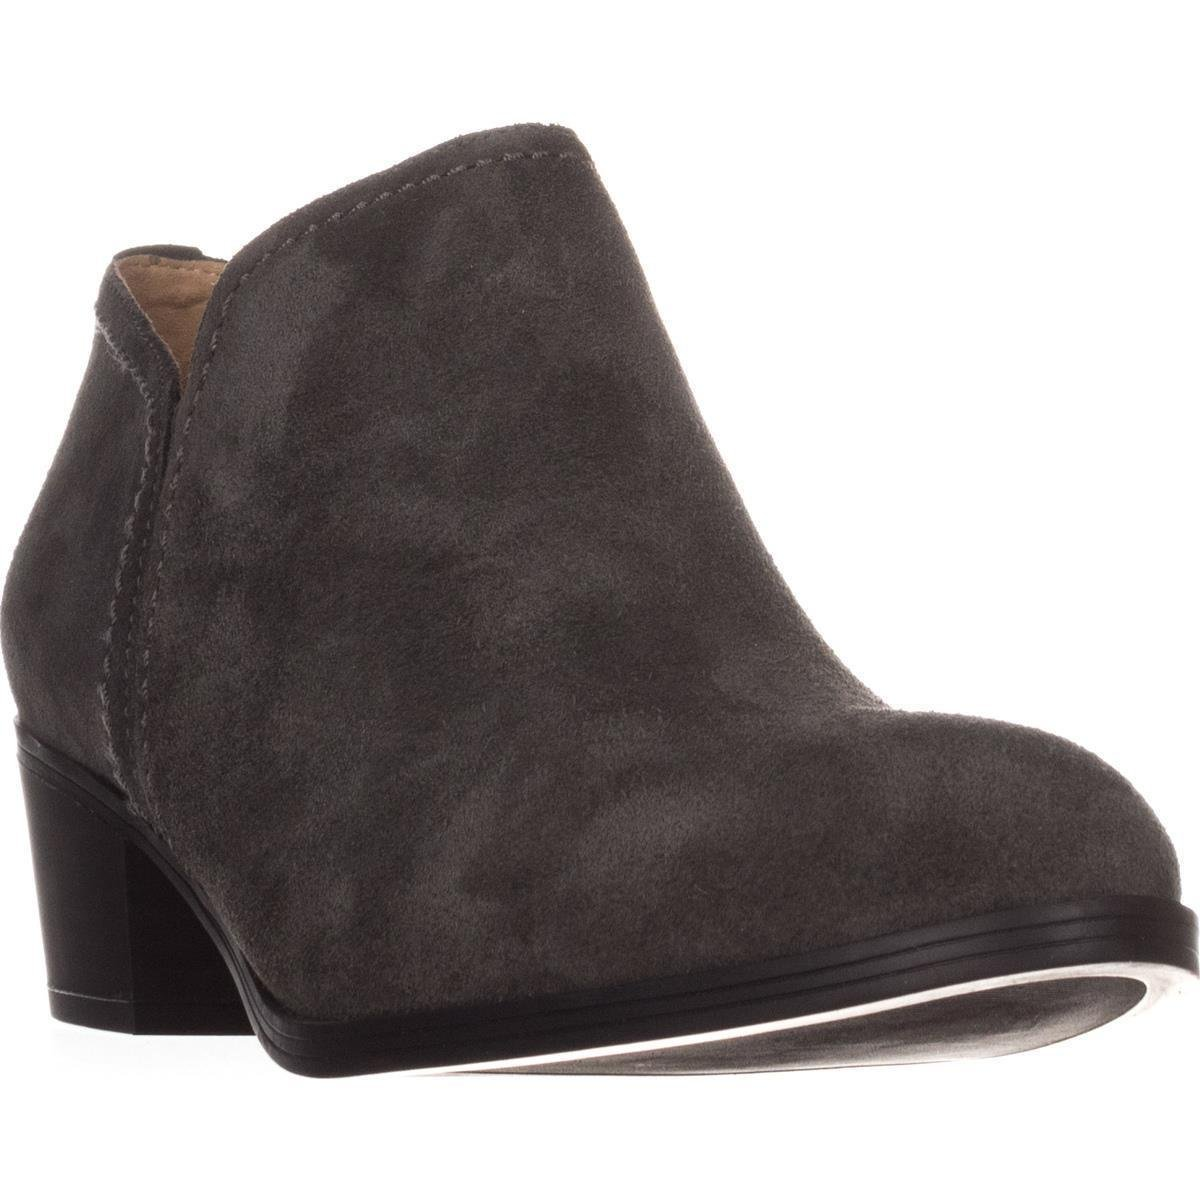 Naturalizer Women's Zarie Boot US|Elephant B01MR49A4Y 7 B(M) US|Elephant Boot Suede f2aa2a